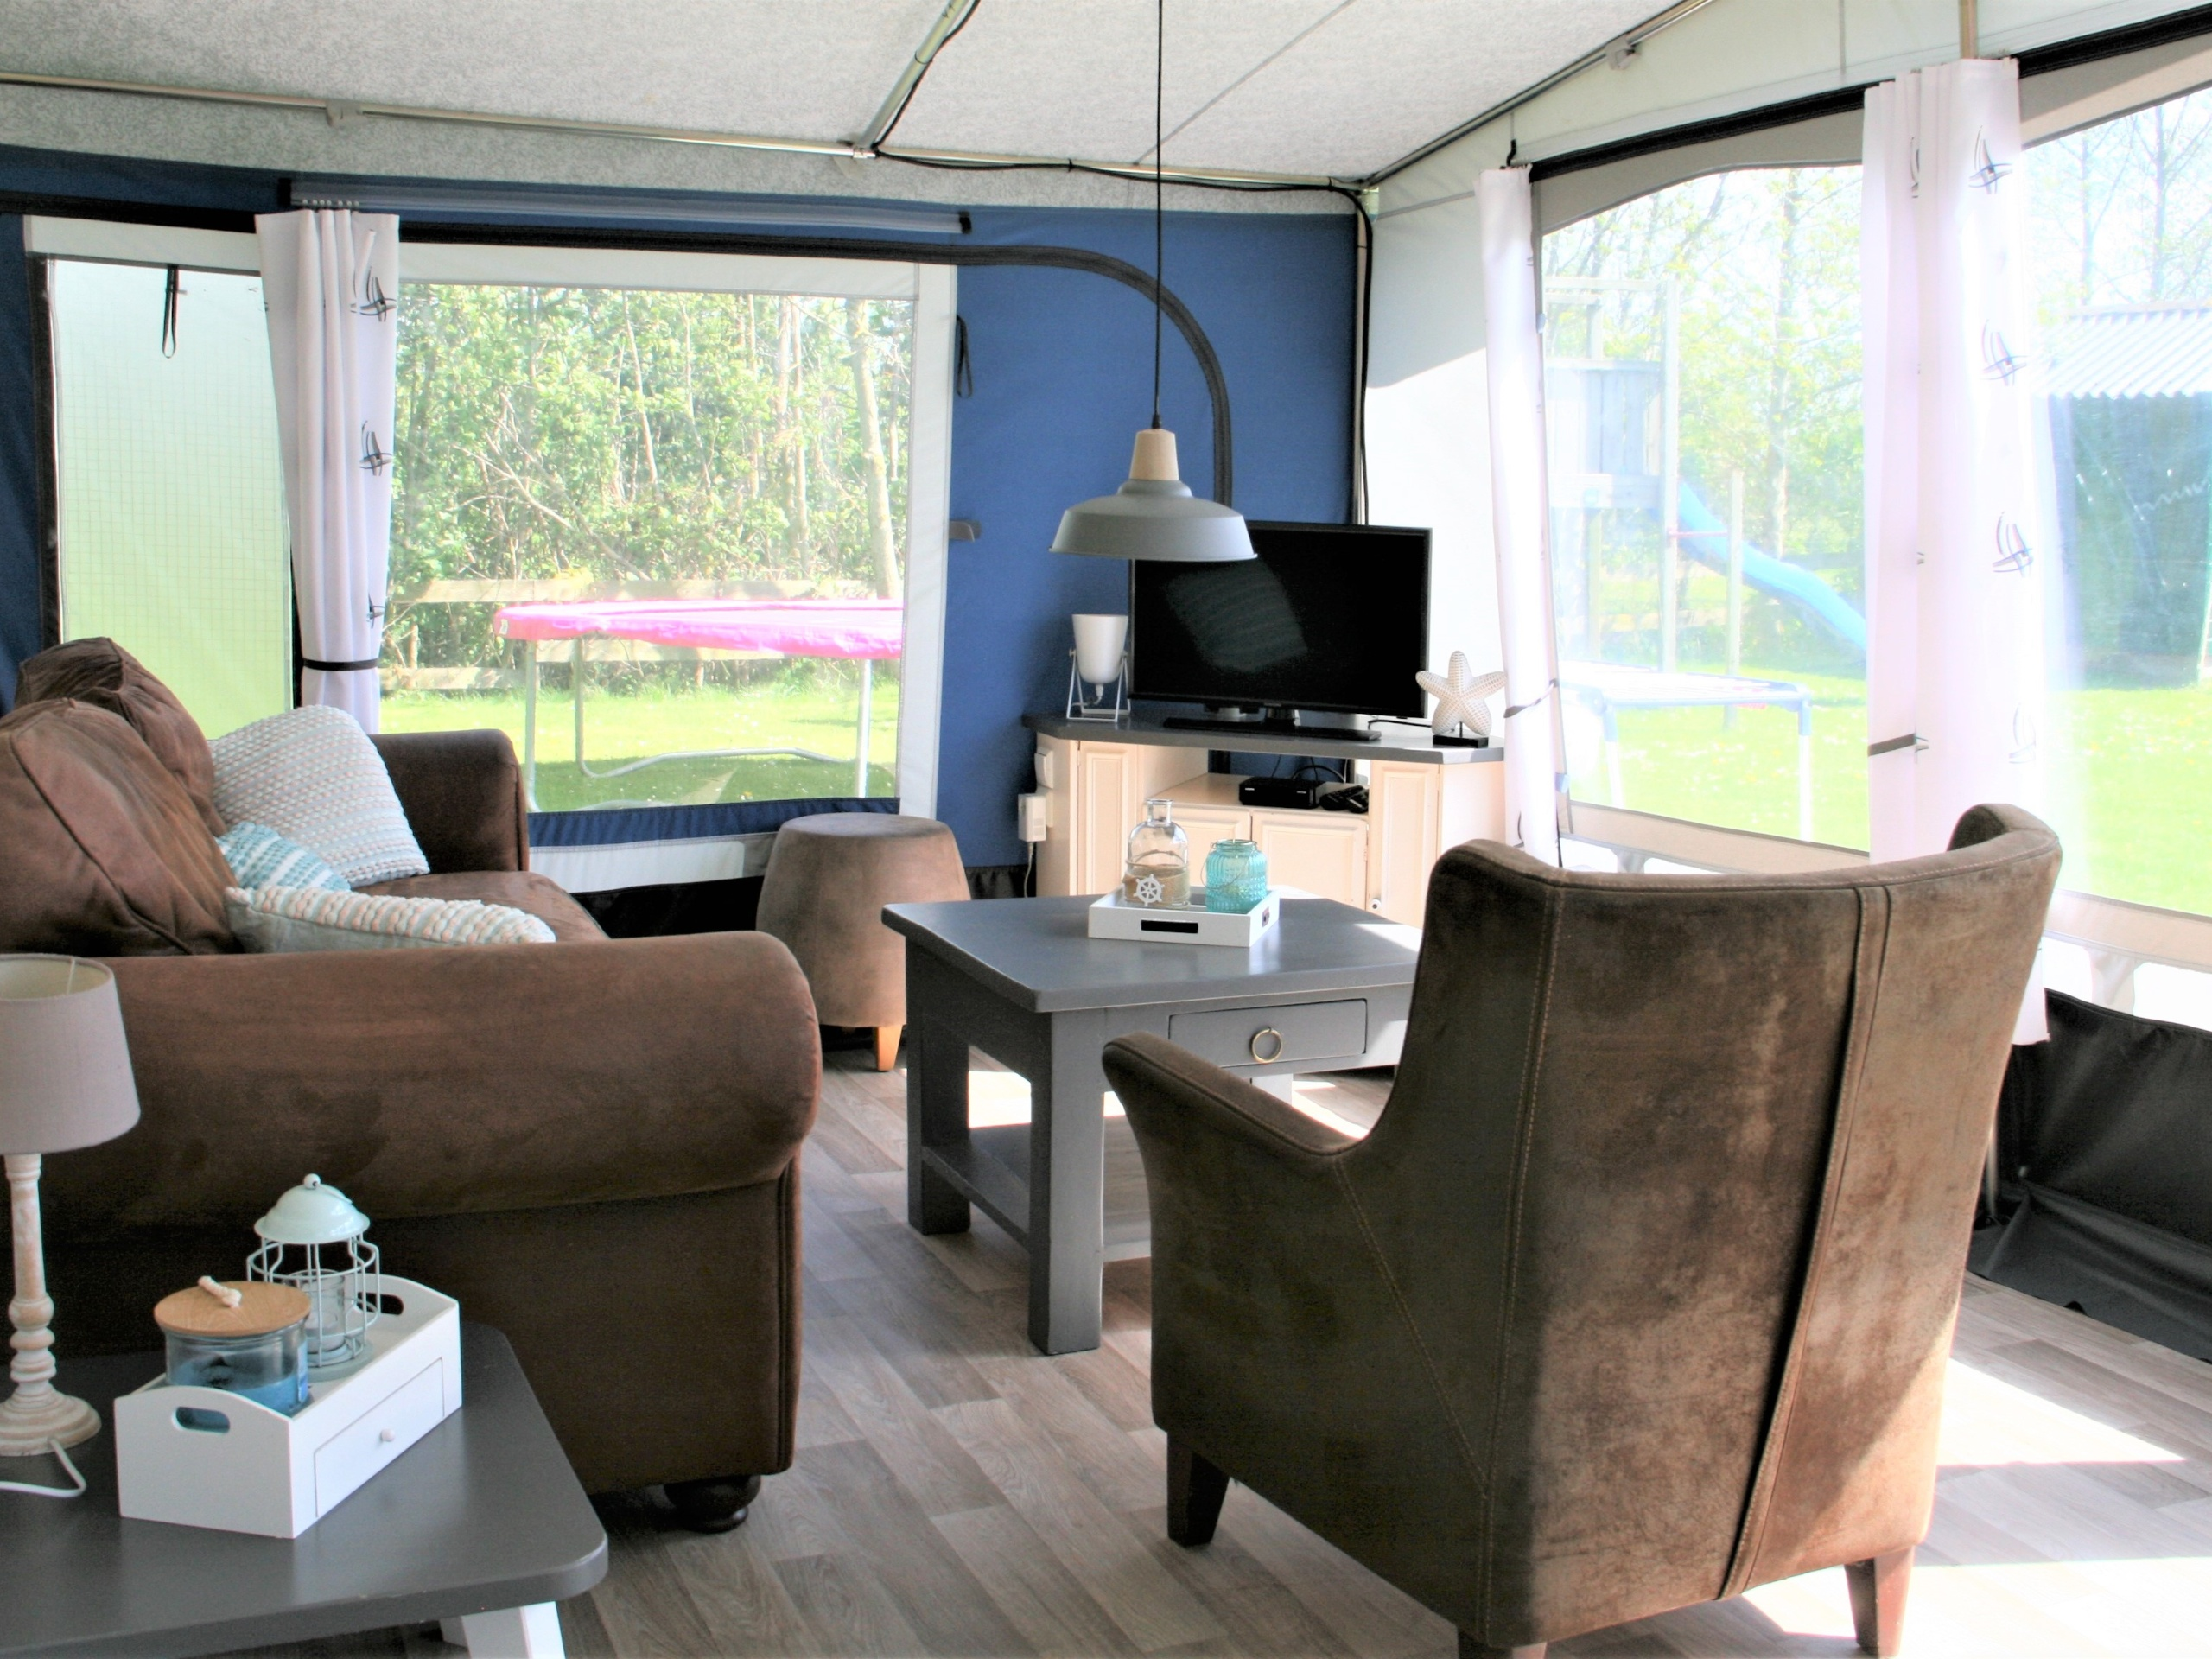 Comfortable touring caravan with private bathroom nicely situated at Den Hoorn